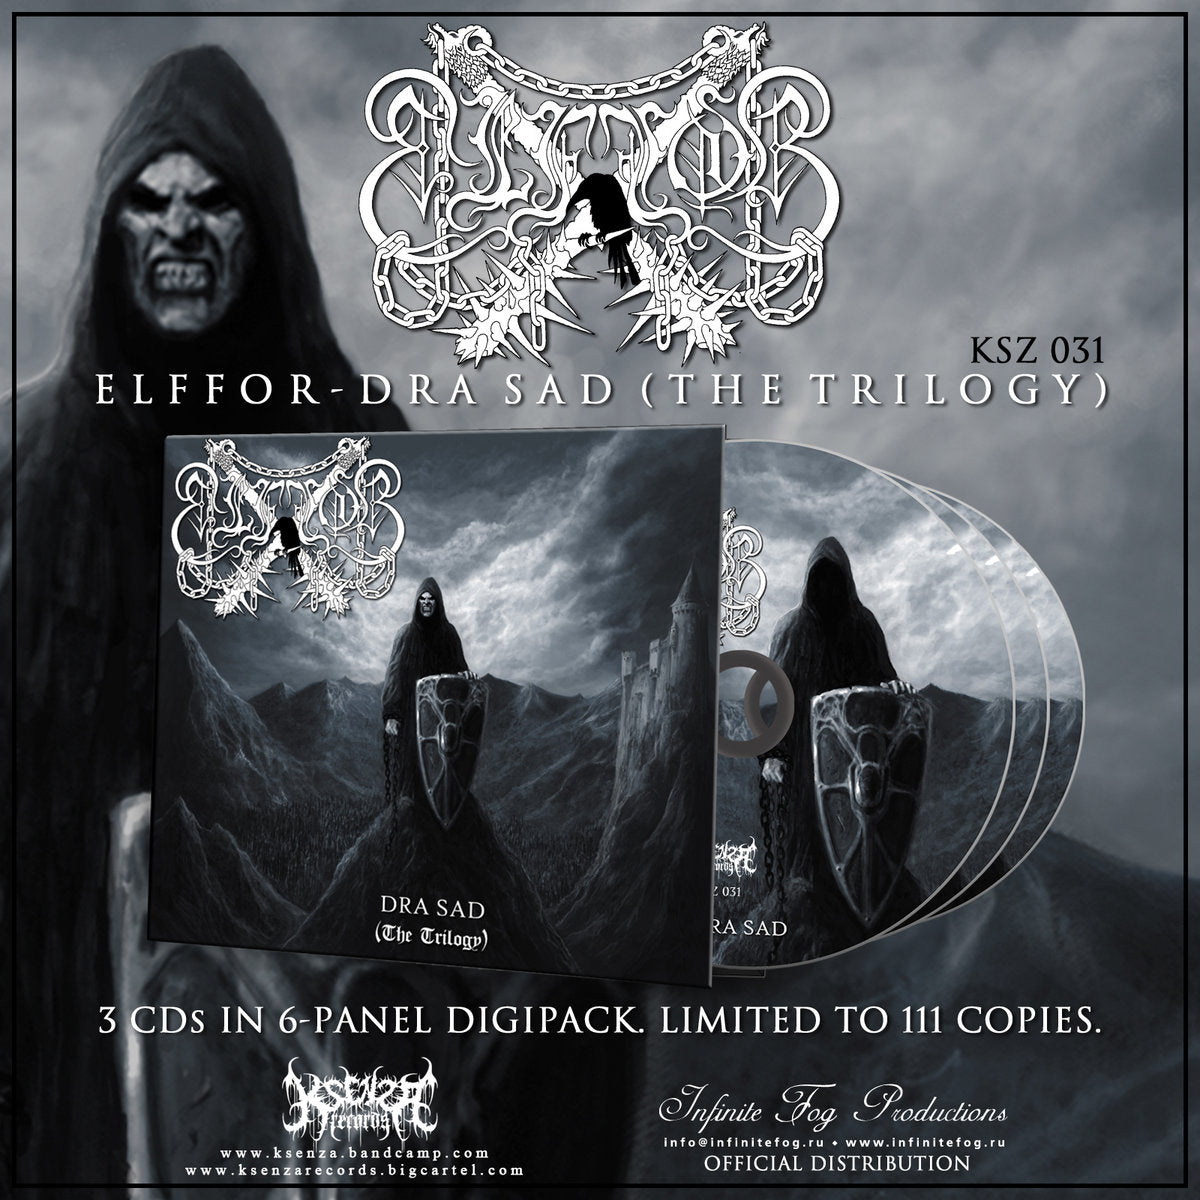 Elffor - Dra Sad (The Trilogy) 3xCD digipak